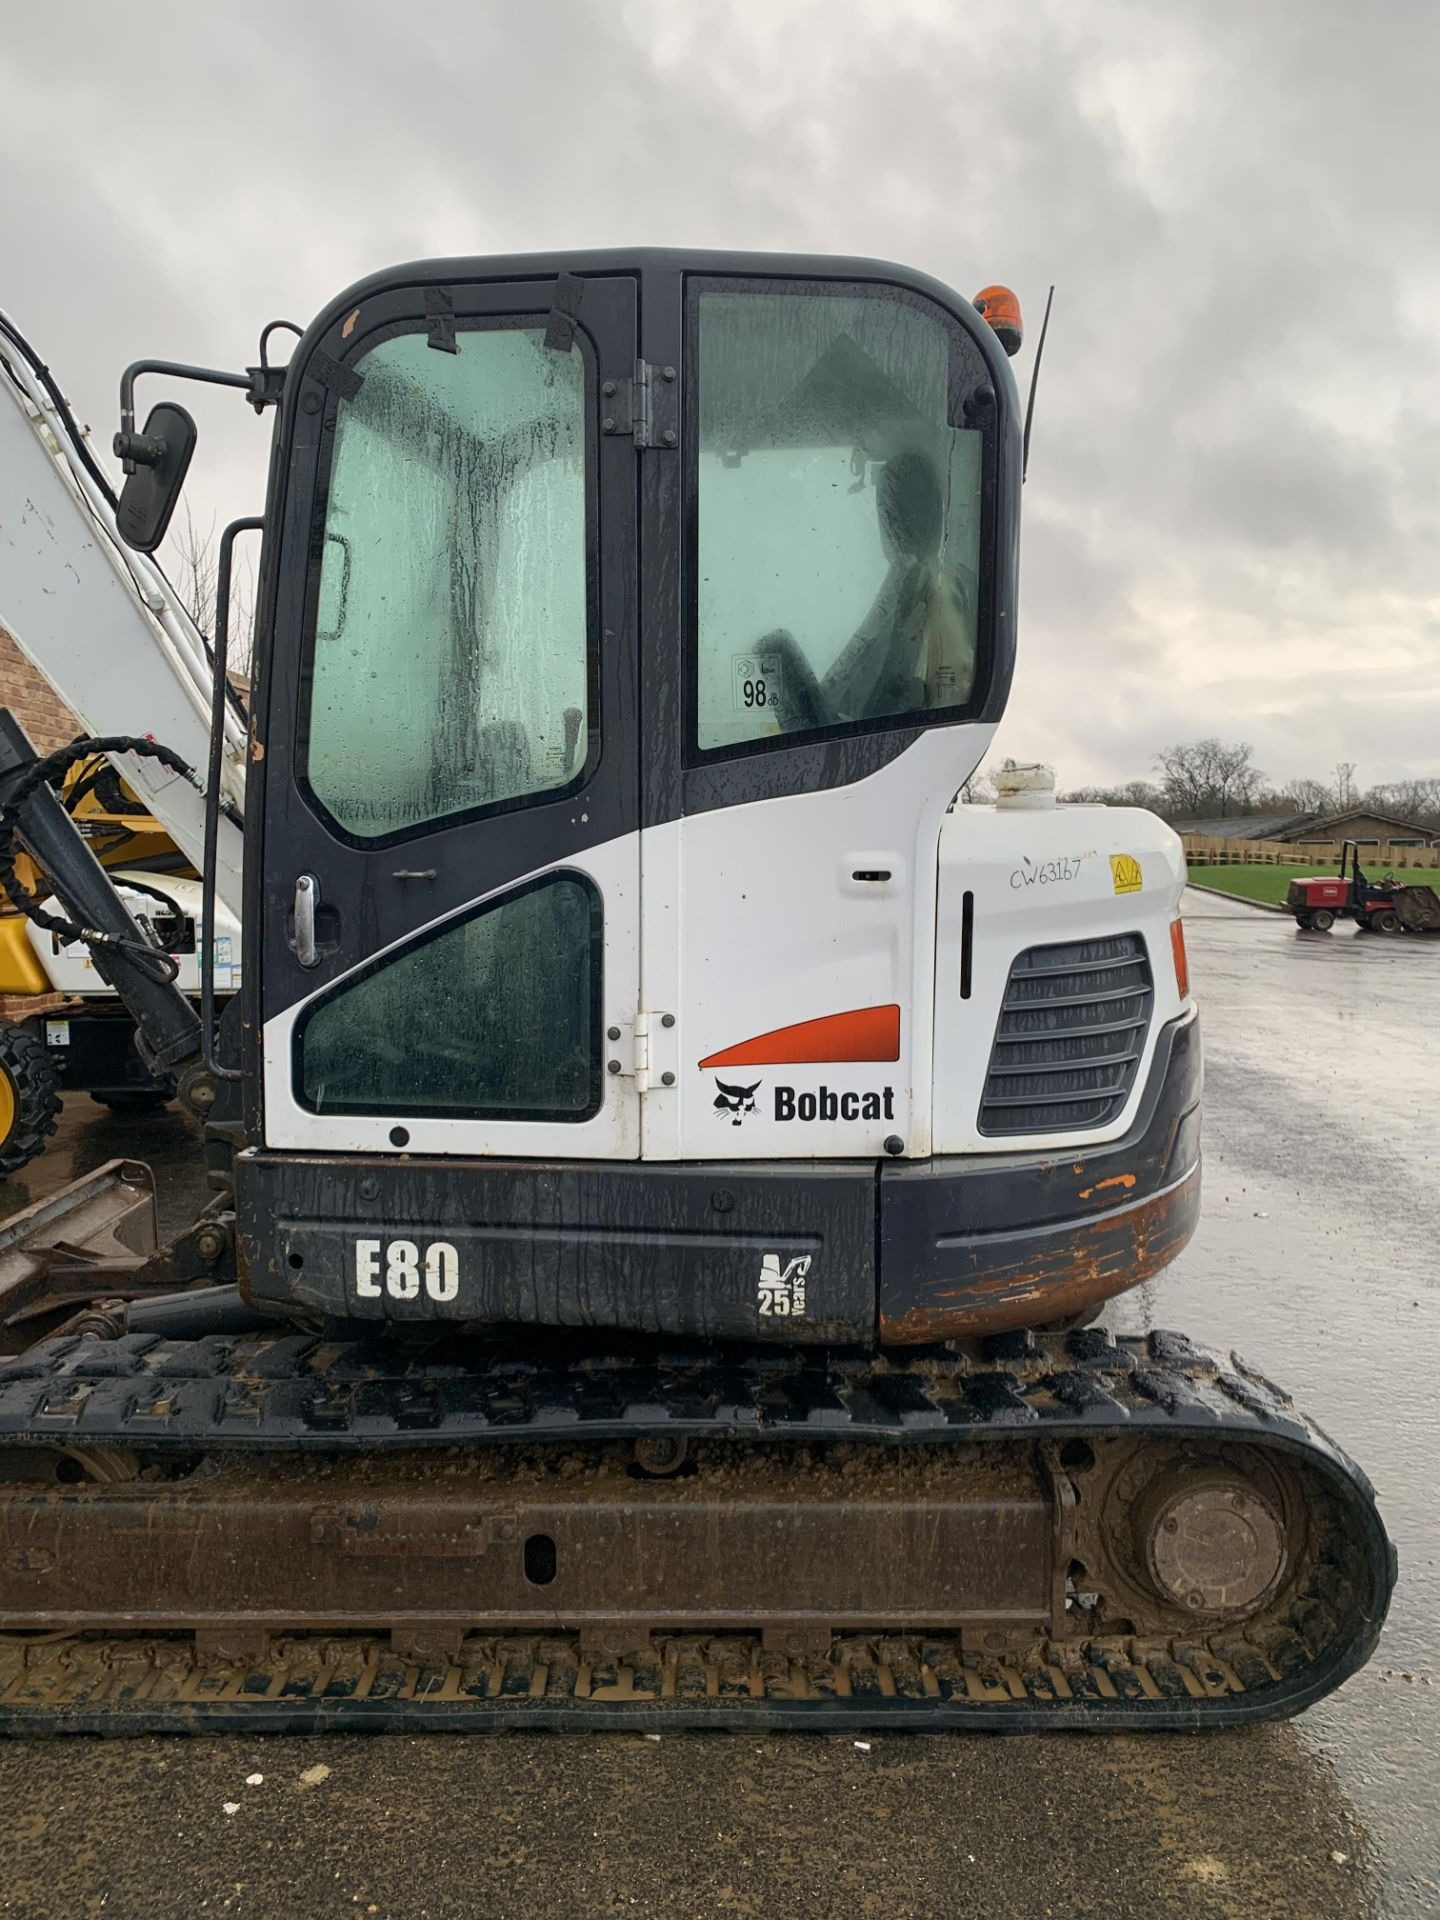 Lot 30 - BOBCAT E80 TRACKED CRAWLER EXCAVATOR / DIGGER, C/W HYDRAULIC THUMB, YEAR 2012, RUNS, WORKS AND DIGS